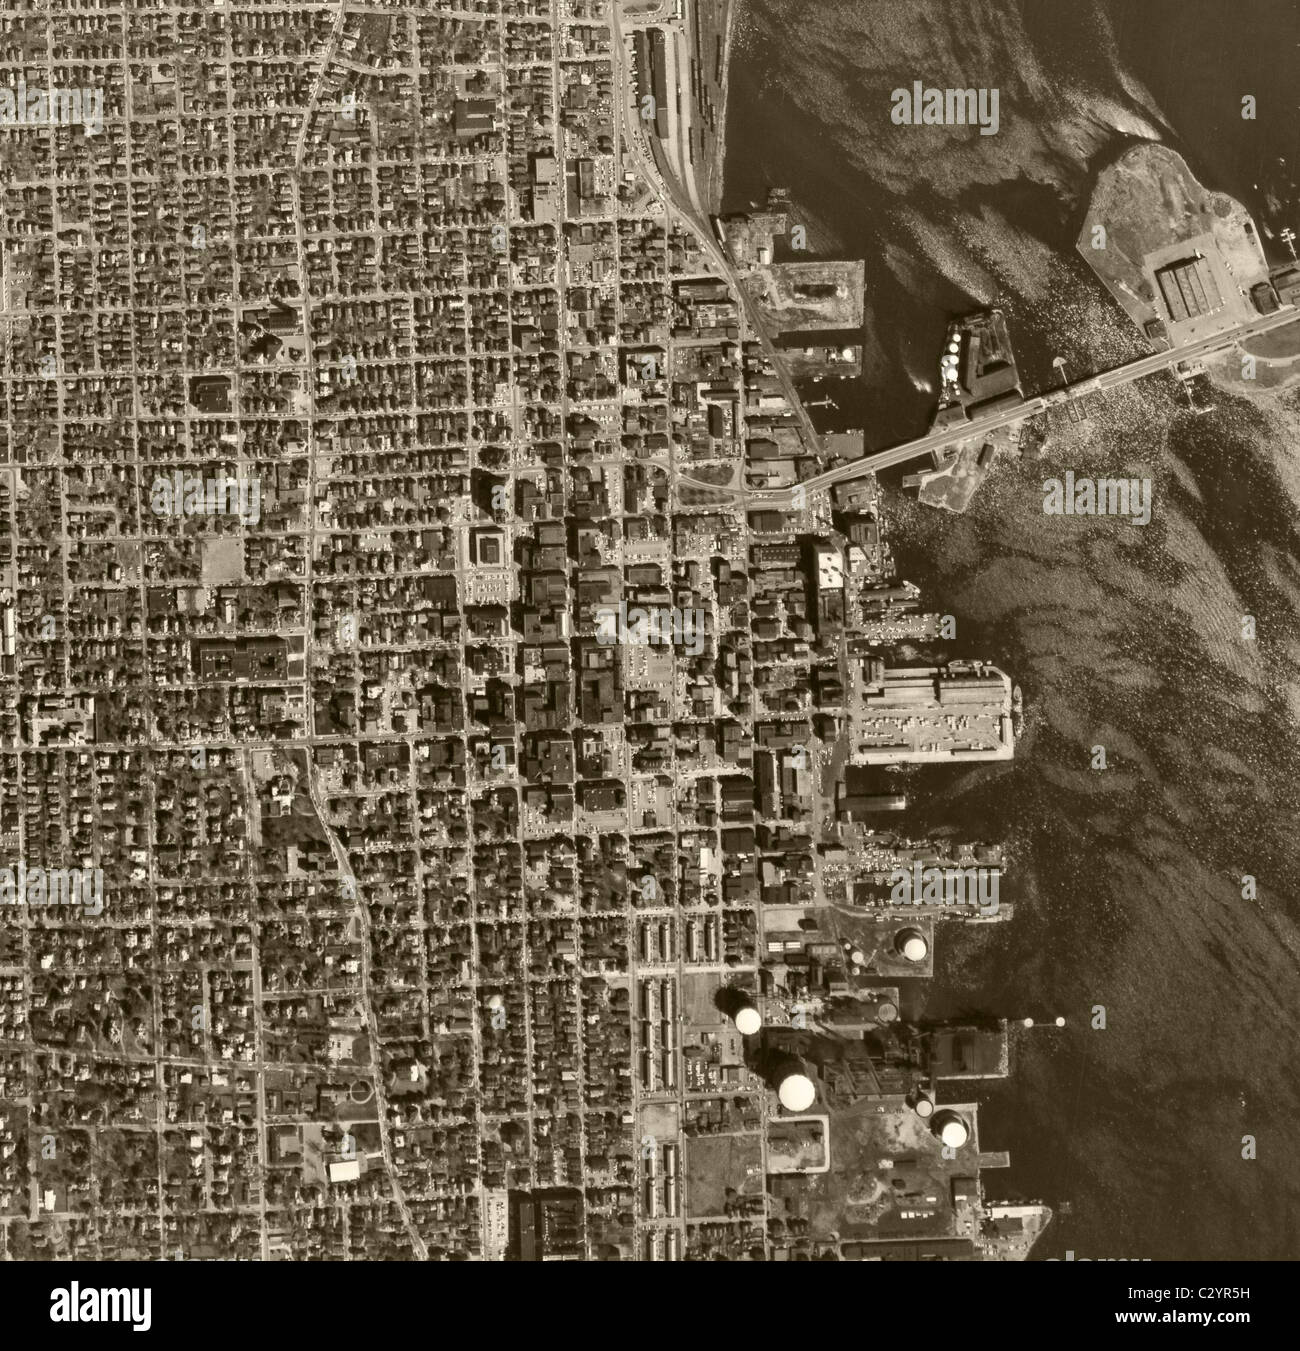 historical aerial map view above Chicago Illinois